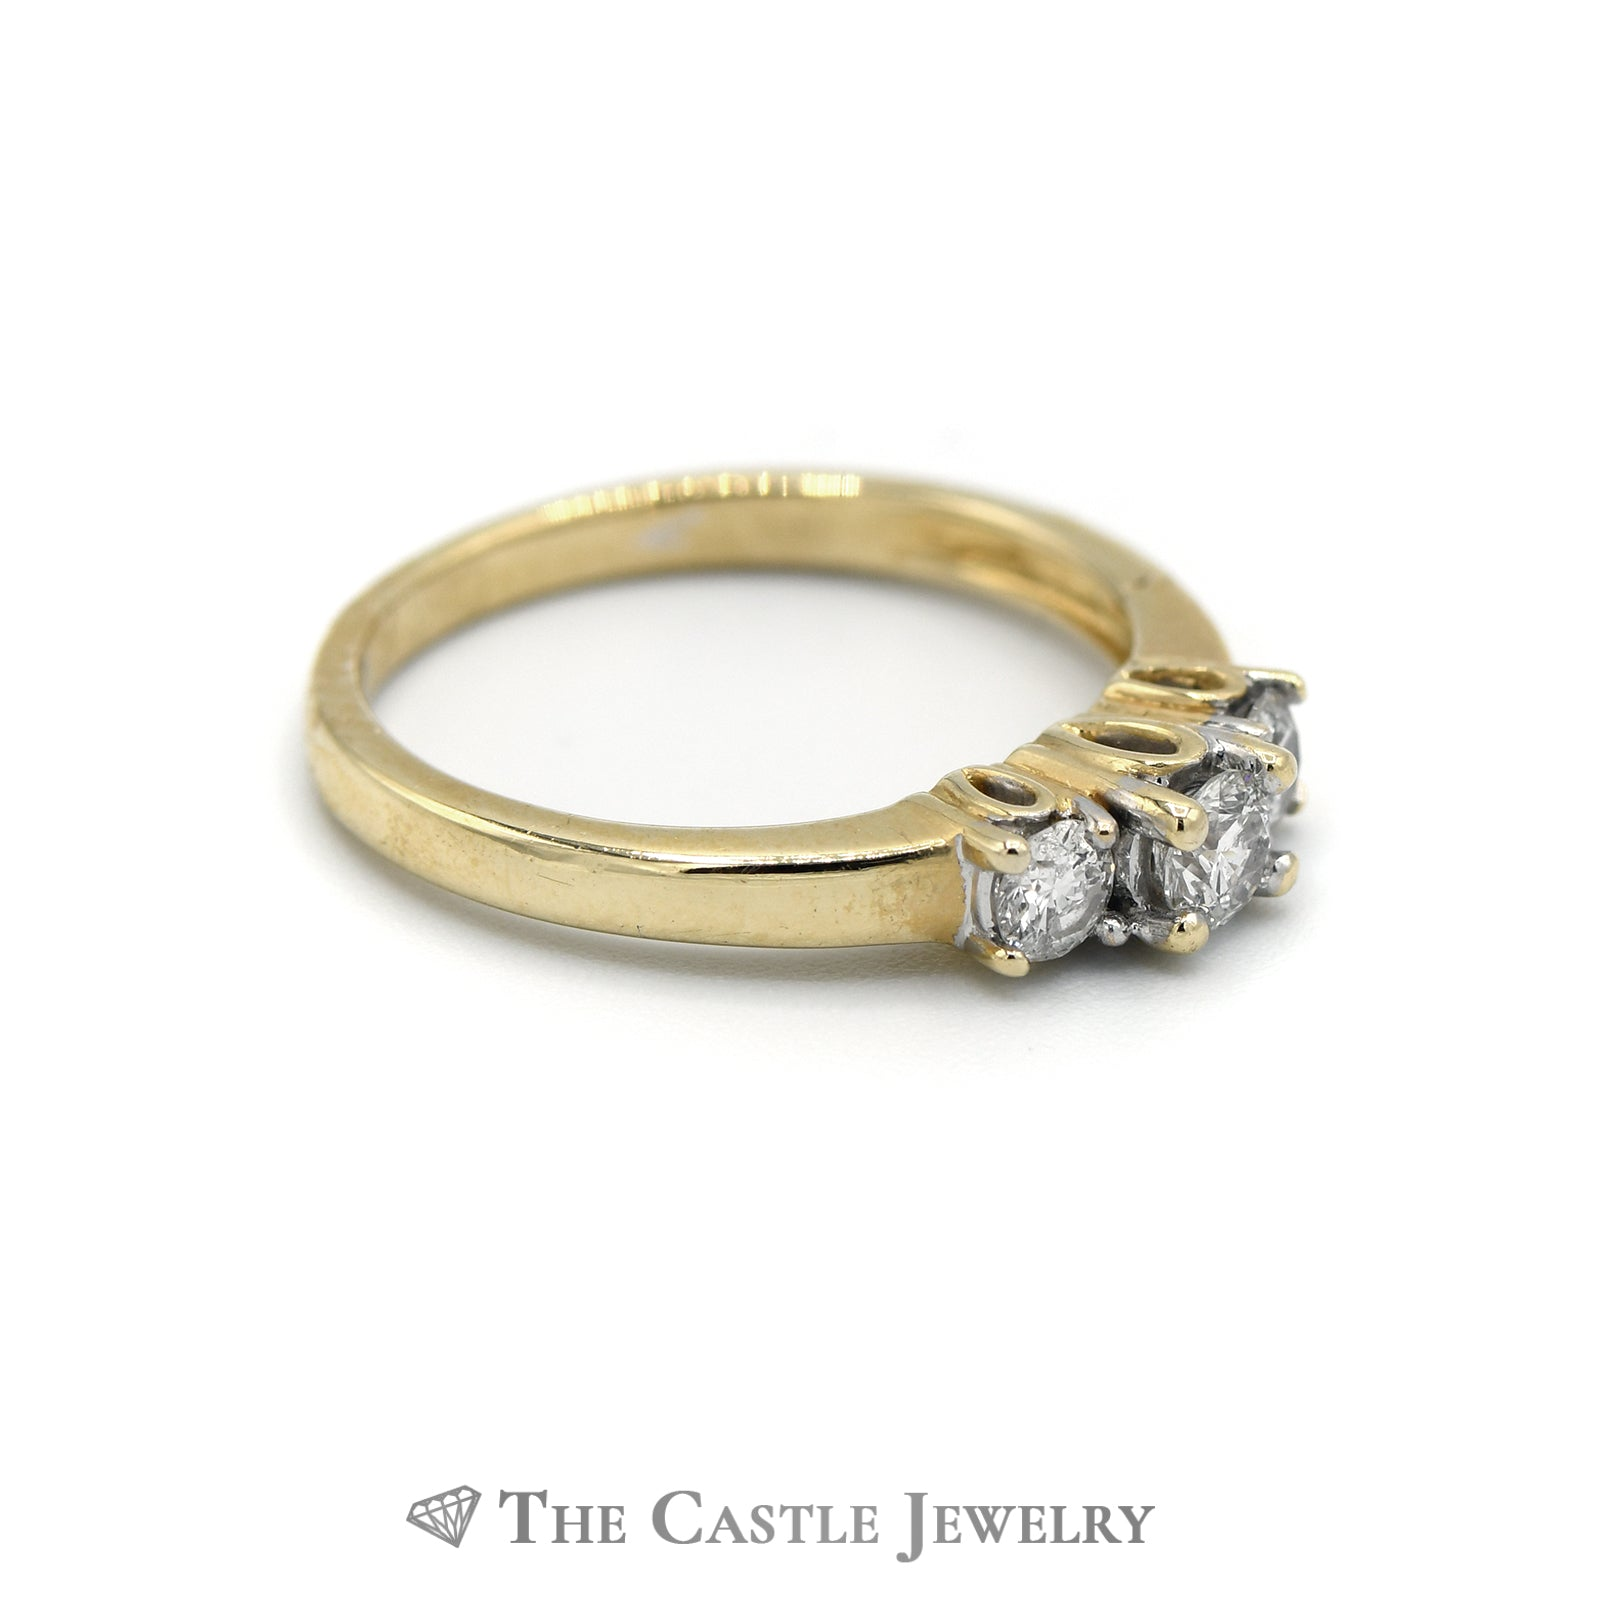 .50CTTW DeBeers Style 14KT Yellow Gold Diamond Ring-2